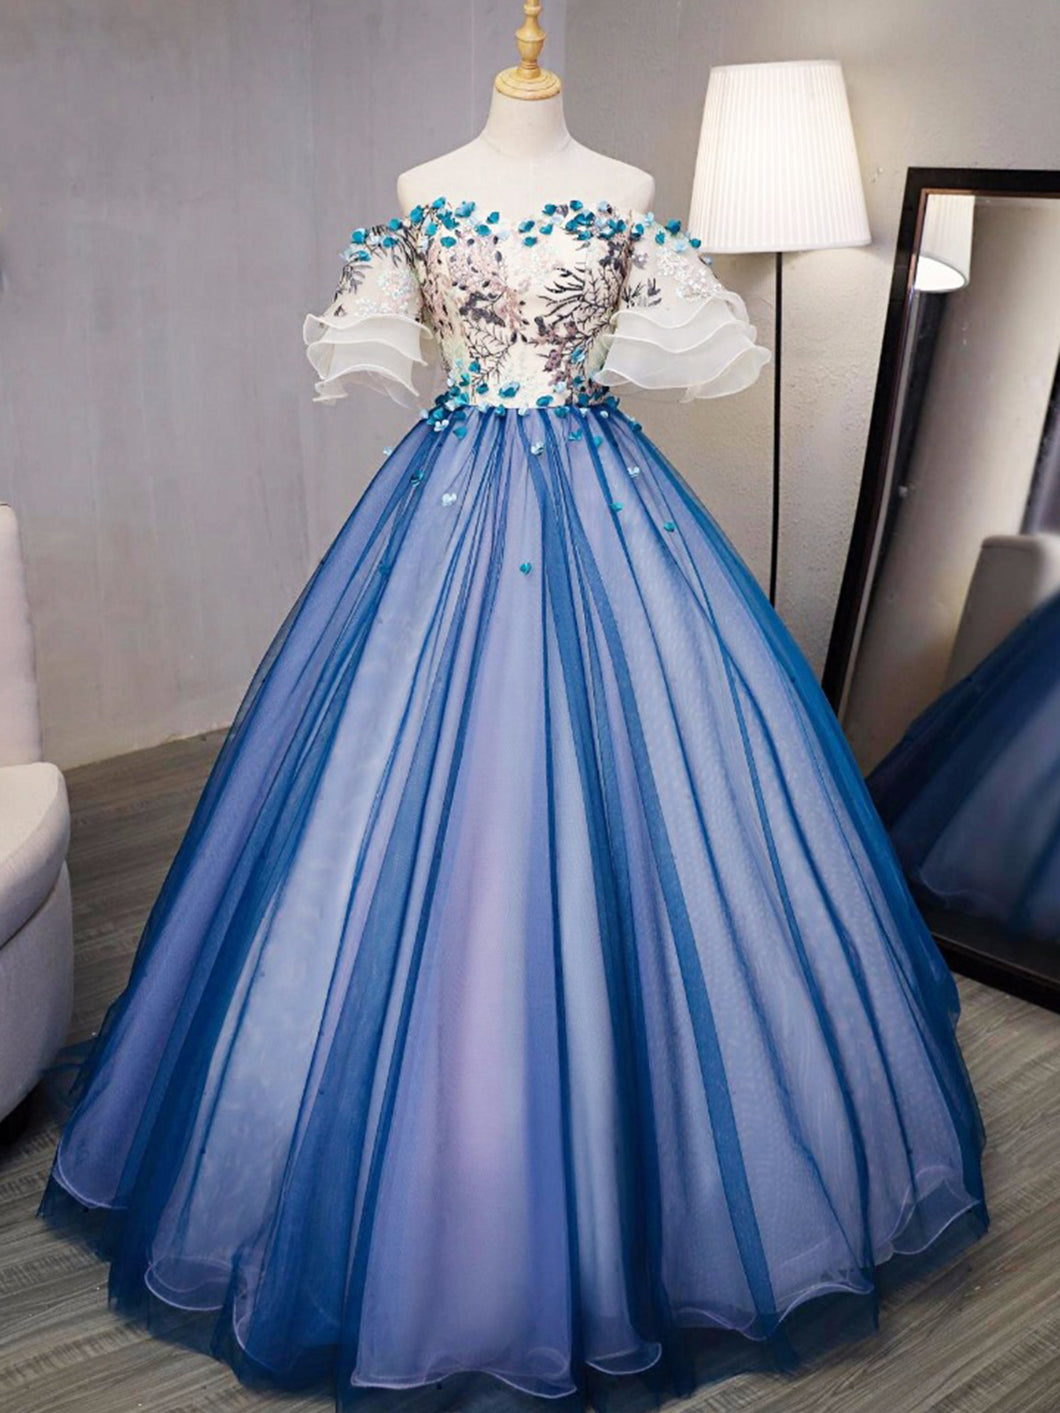 Ball Gown Prom Dresses Royal Blue and Ivory Hand-Made Flower Prom Dress/Evening Dress JKL348